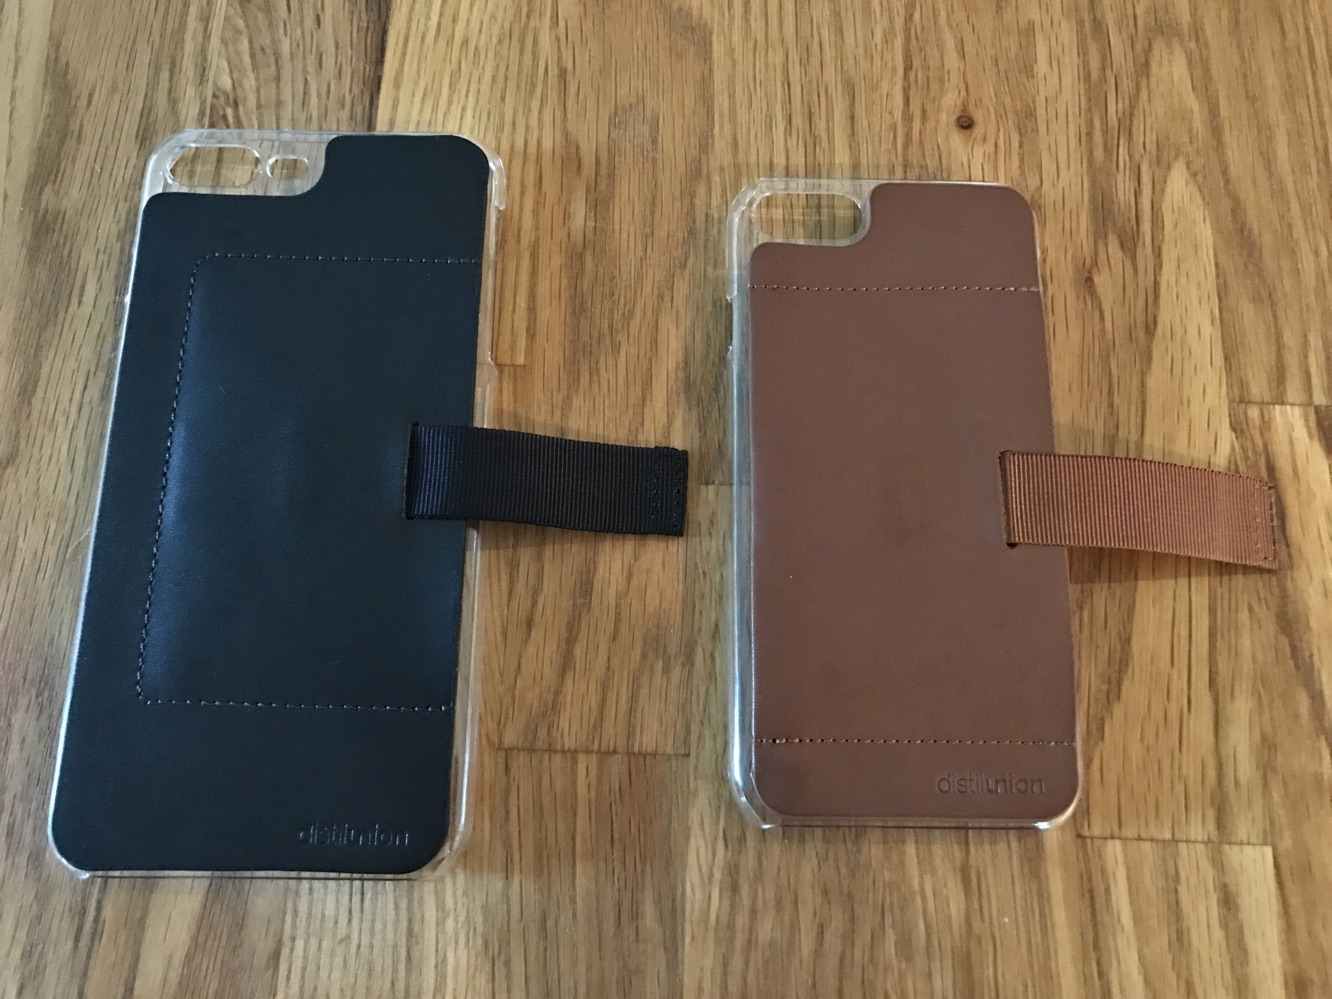 Distil Union Wally Ether for iPhone 7 and iPhone 7 Plus